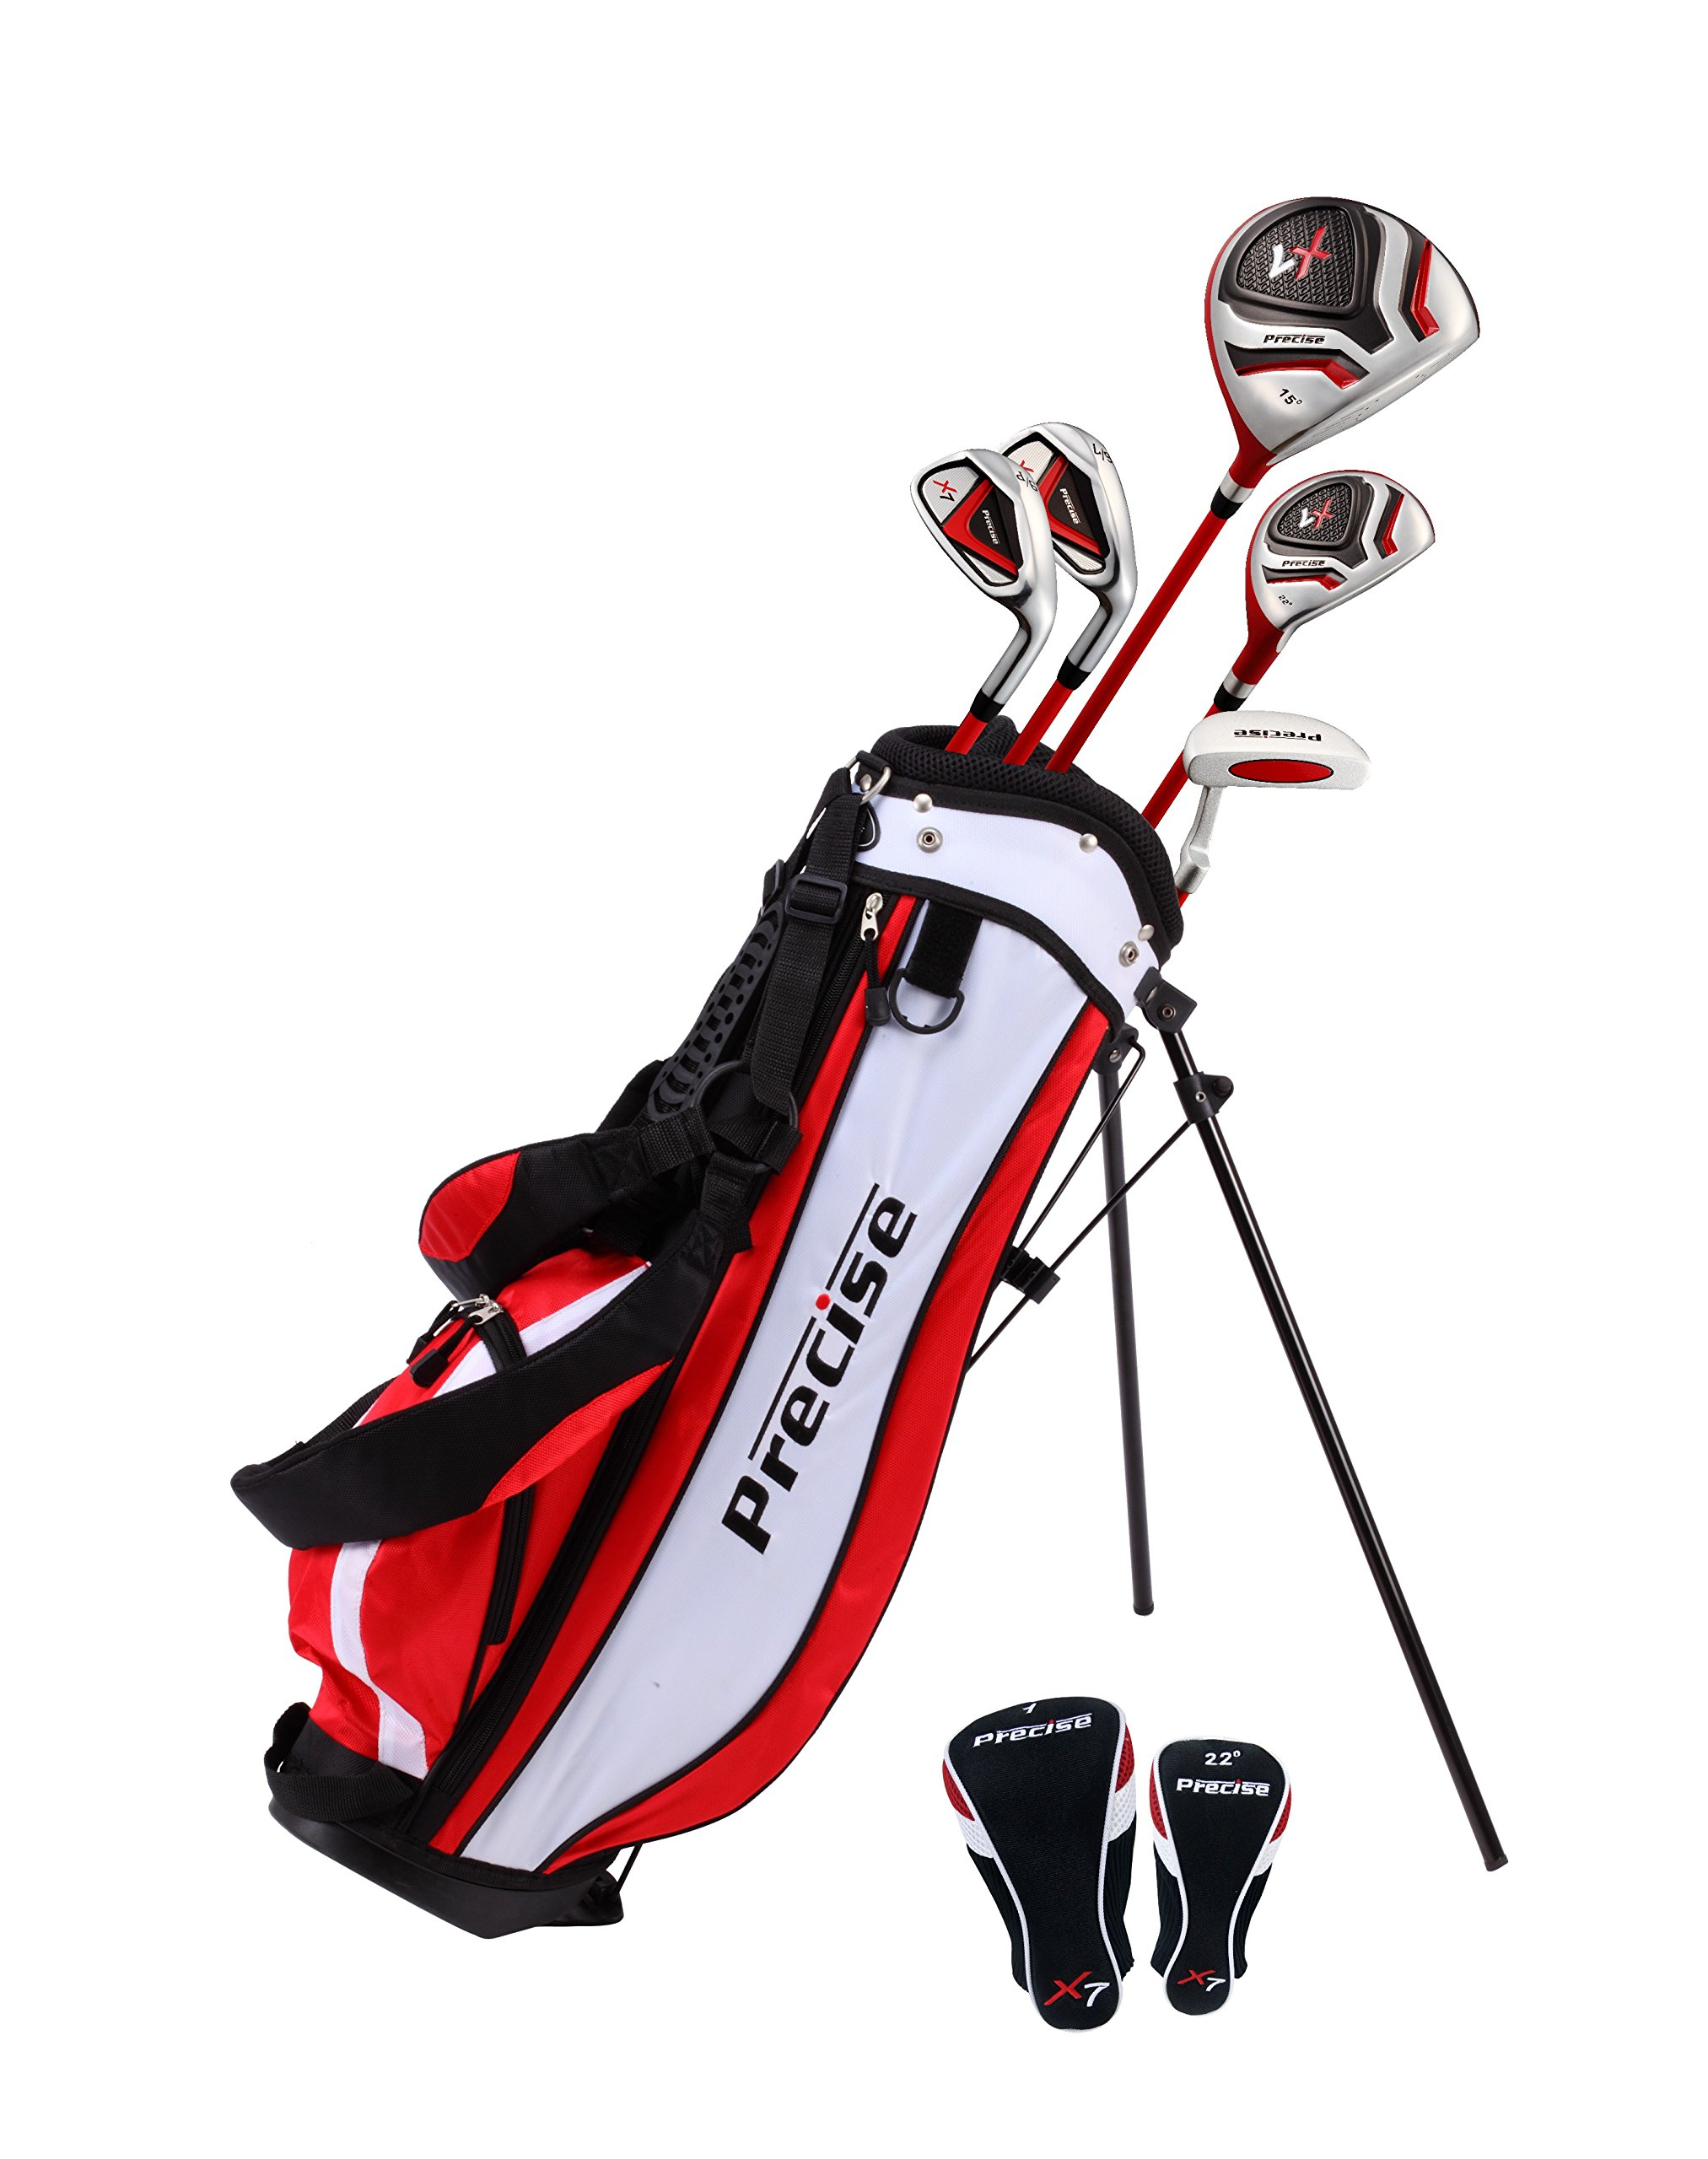 Precise X7 Junior Complete Golf Club Set for Children Kids - 3 Age Groups Sizes Available - Boys & Girls - Right Hand & Left Hand! (Red Ages 6-8, Left Hand) by PreciseGolf Co.